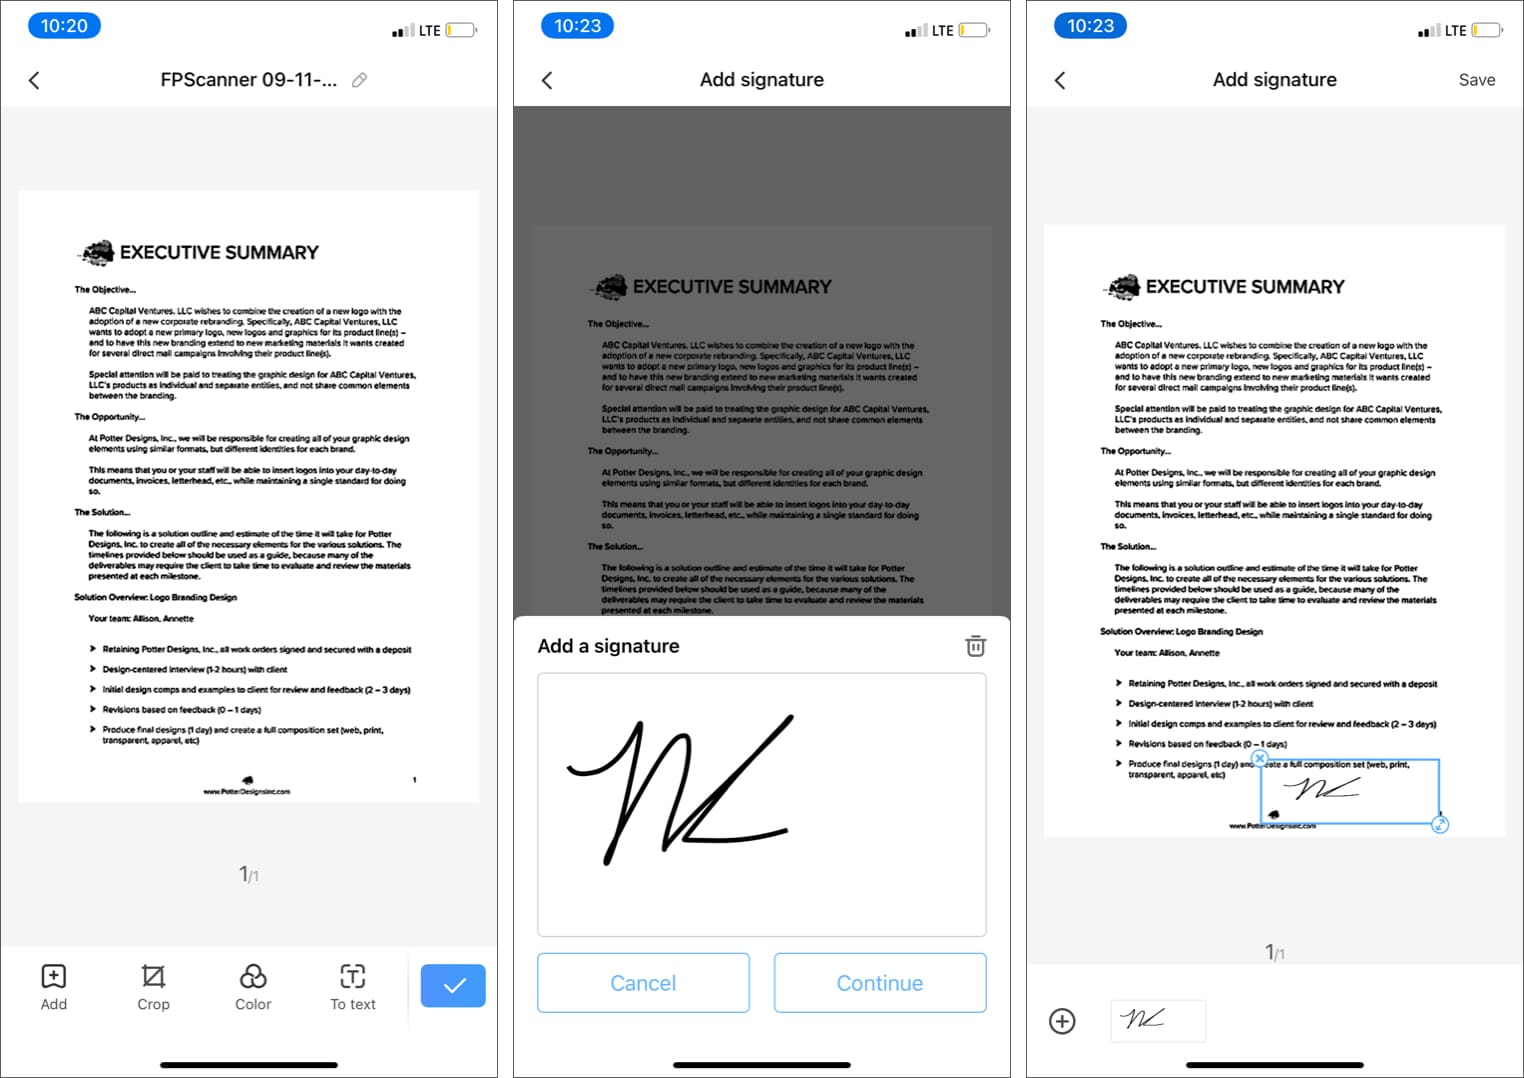 Add a signature in document using FP Scanner